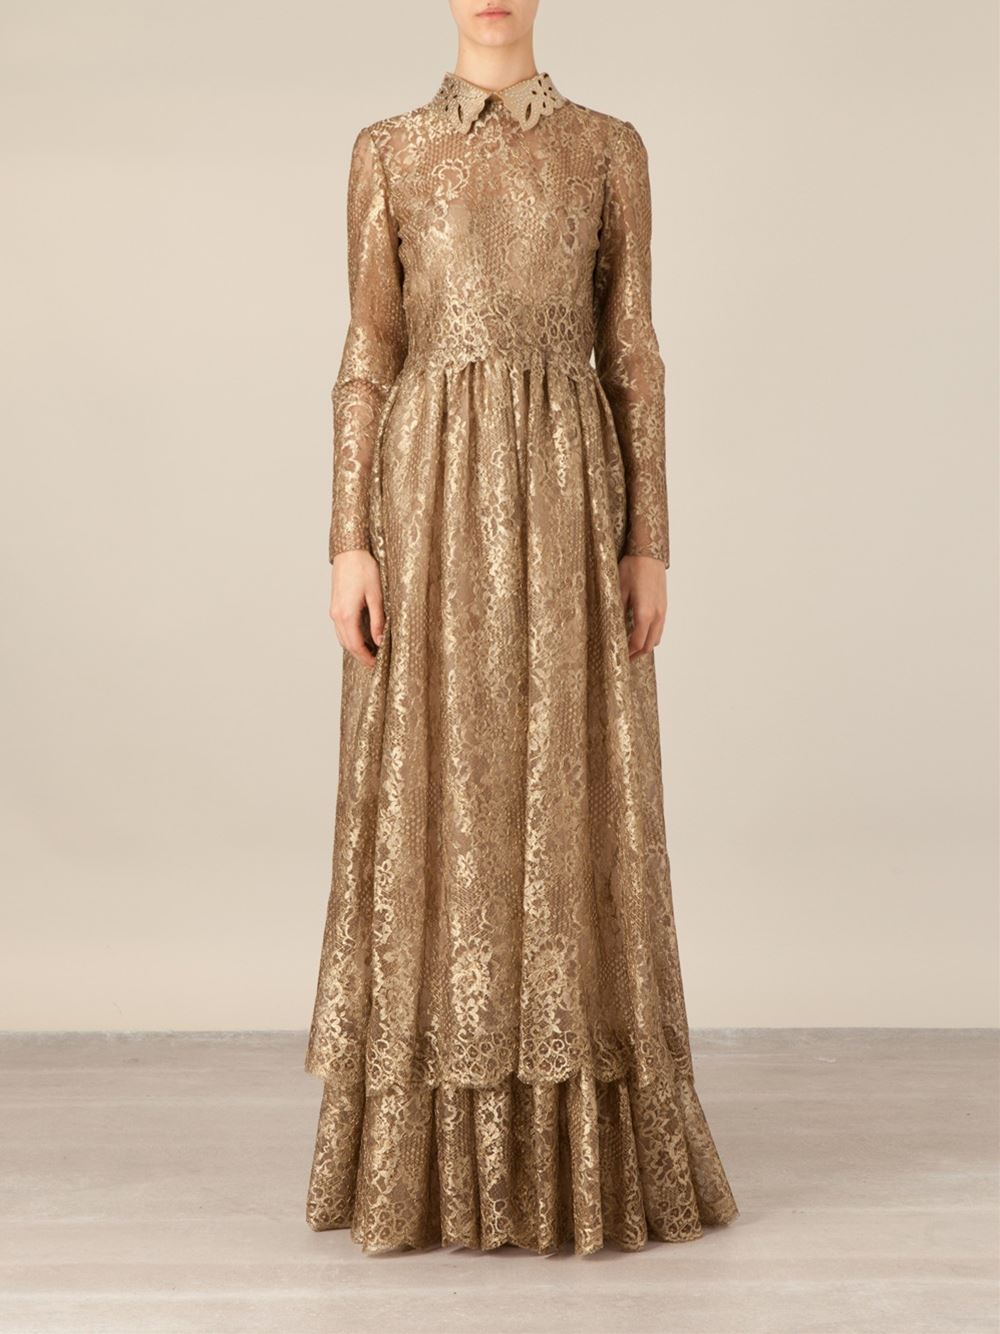 Lyst - Valentino Lace Gown in Metallic